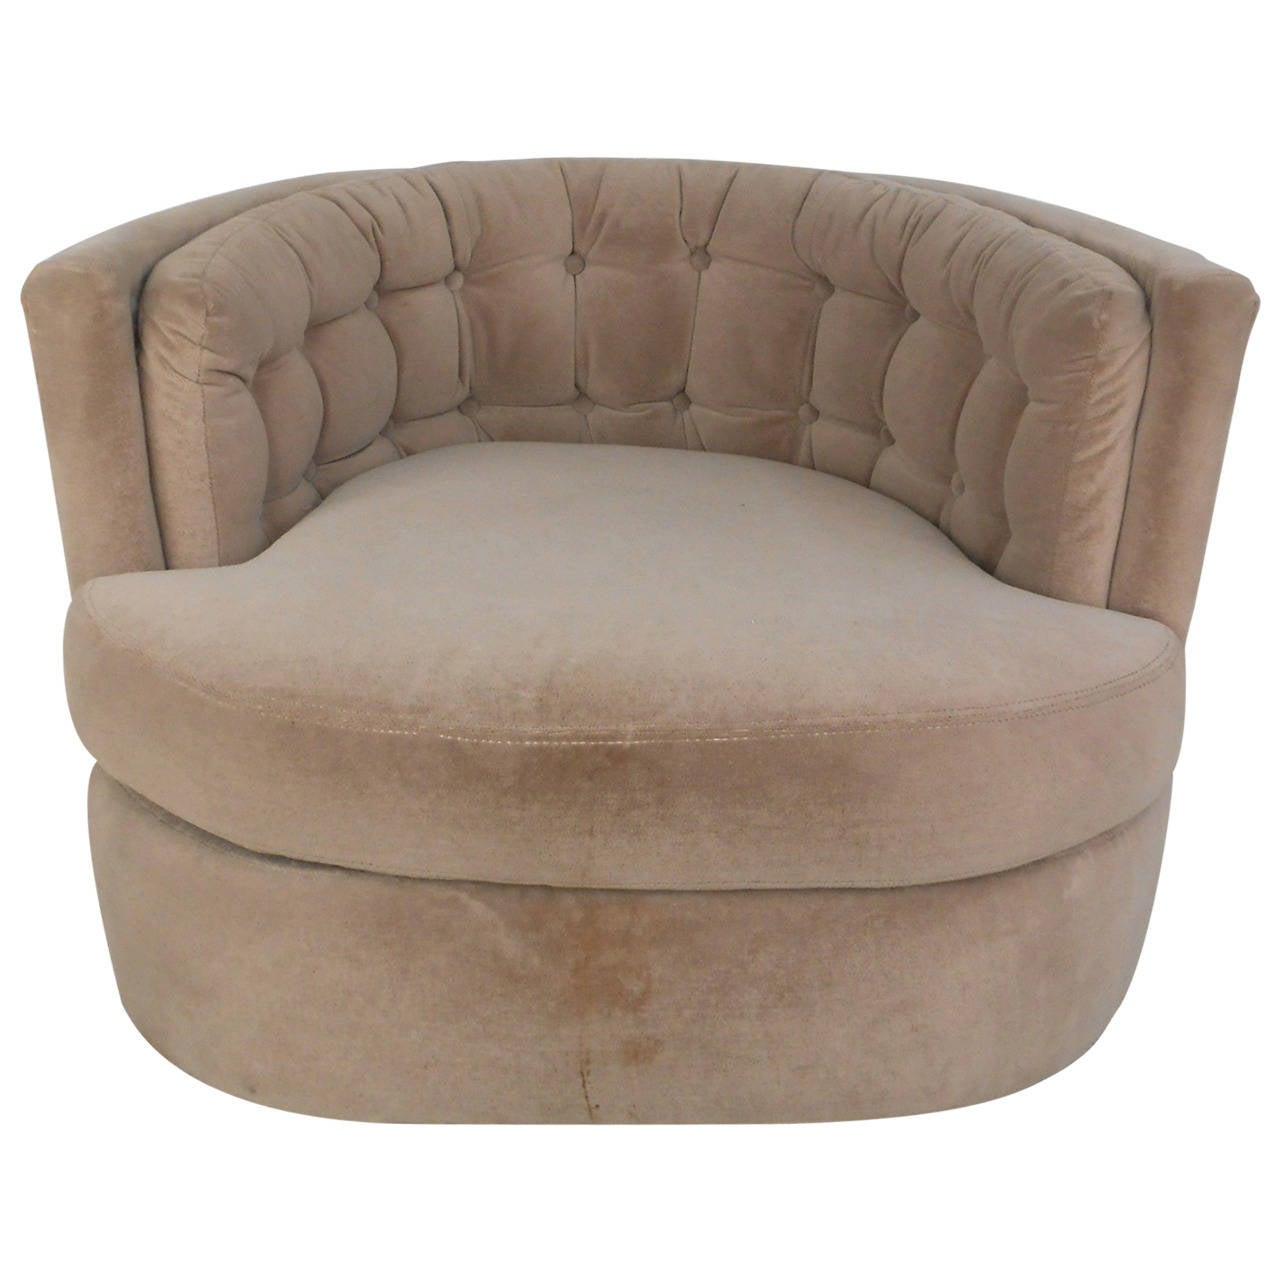 Mid Century Modern Milo Baughman Style Barrel Back Swivel Lounge Chair For Sale at 1stdibs